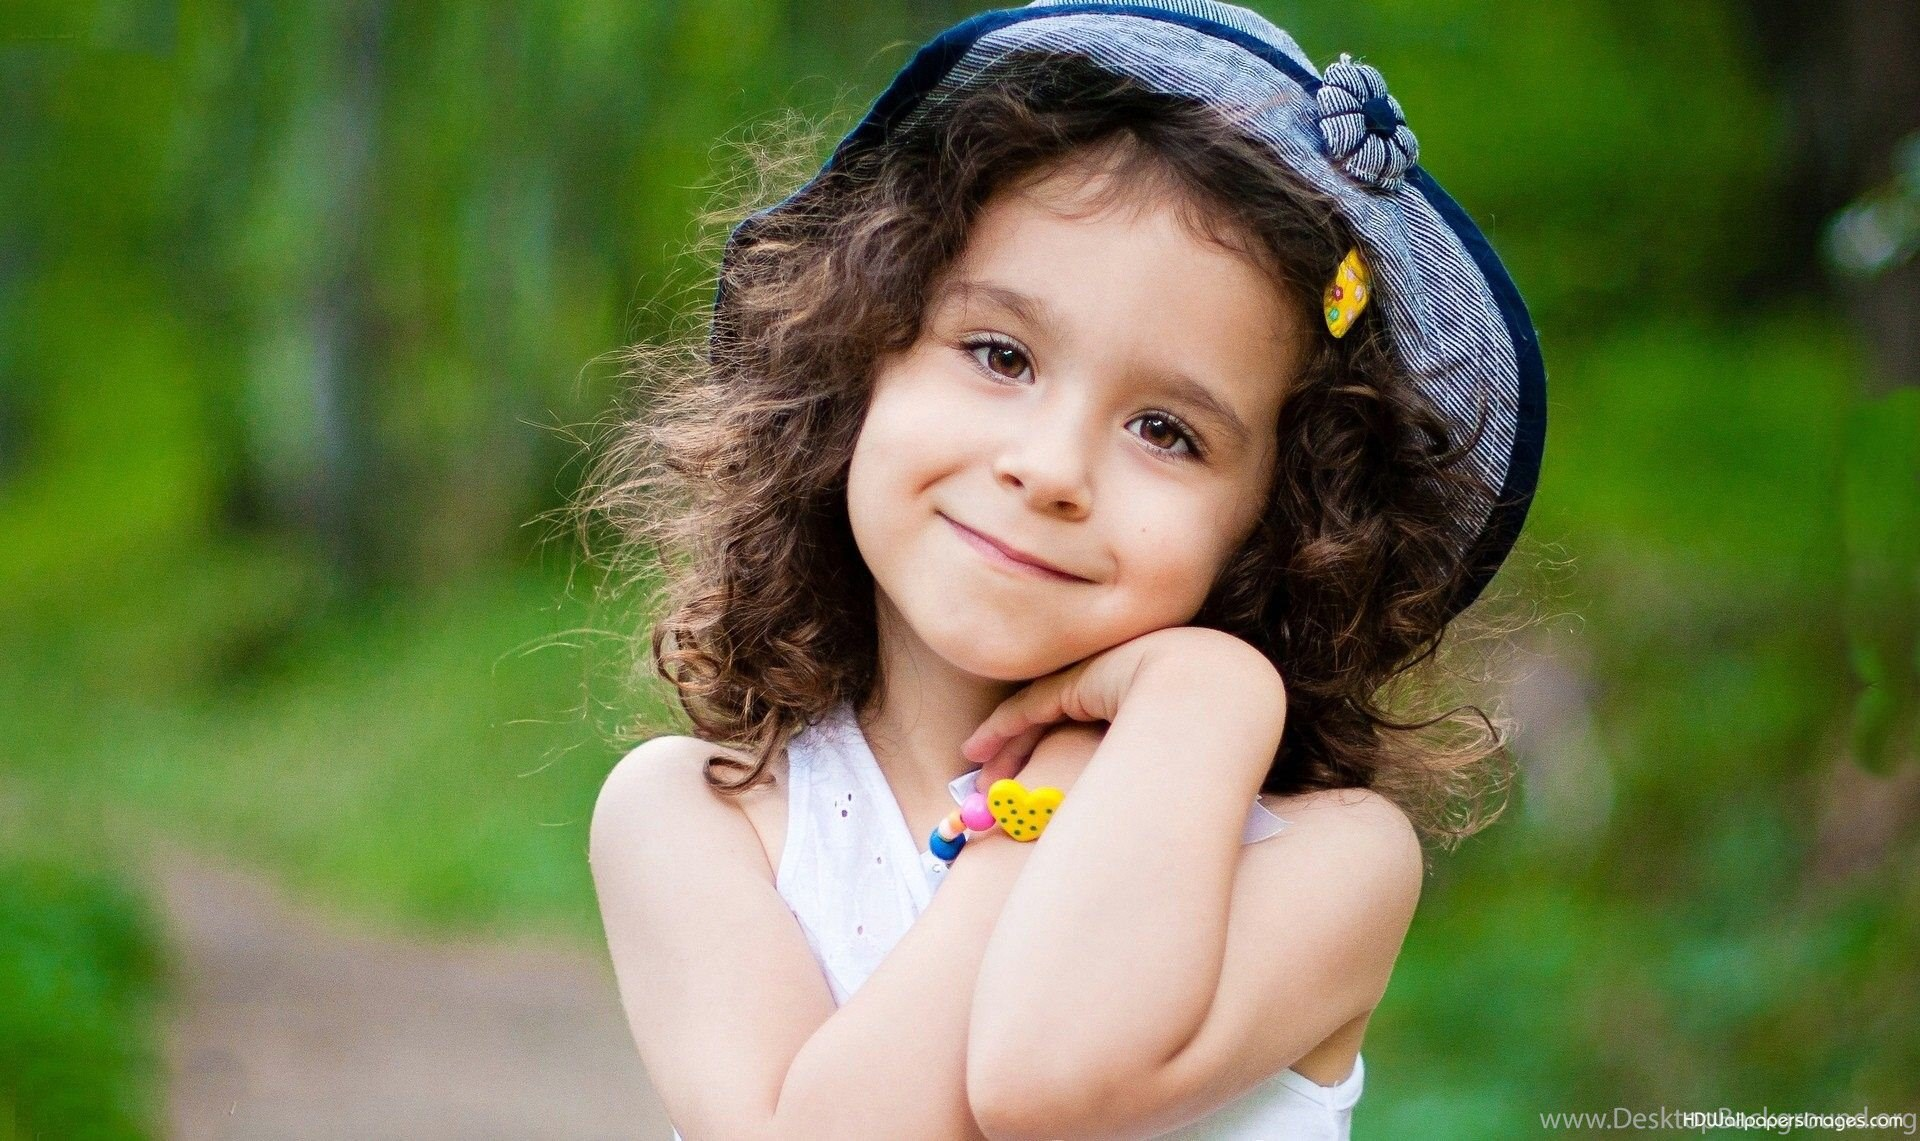 Cute Baby Girl Wallpapers For Mobile The Art Mad ...